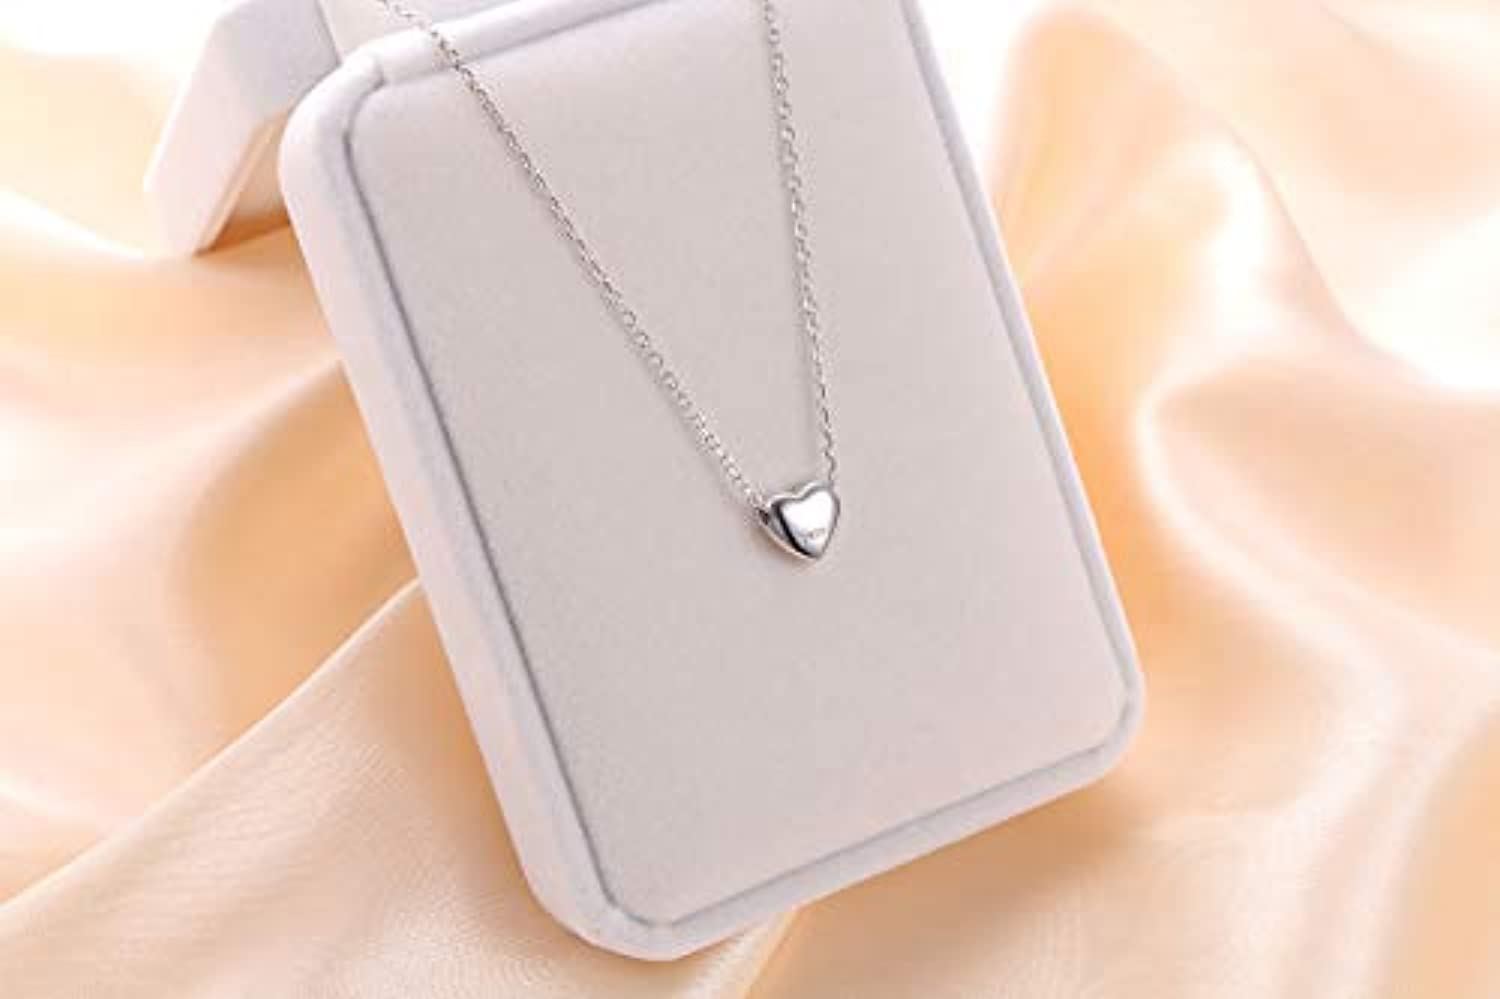 925 Sterling Silver Love Heart Pendant Necklace for Women Girls Her Birthday Gift